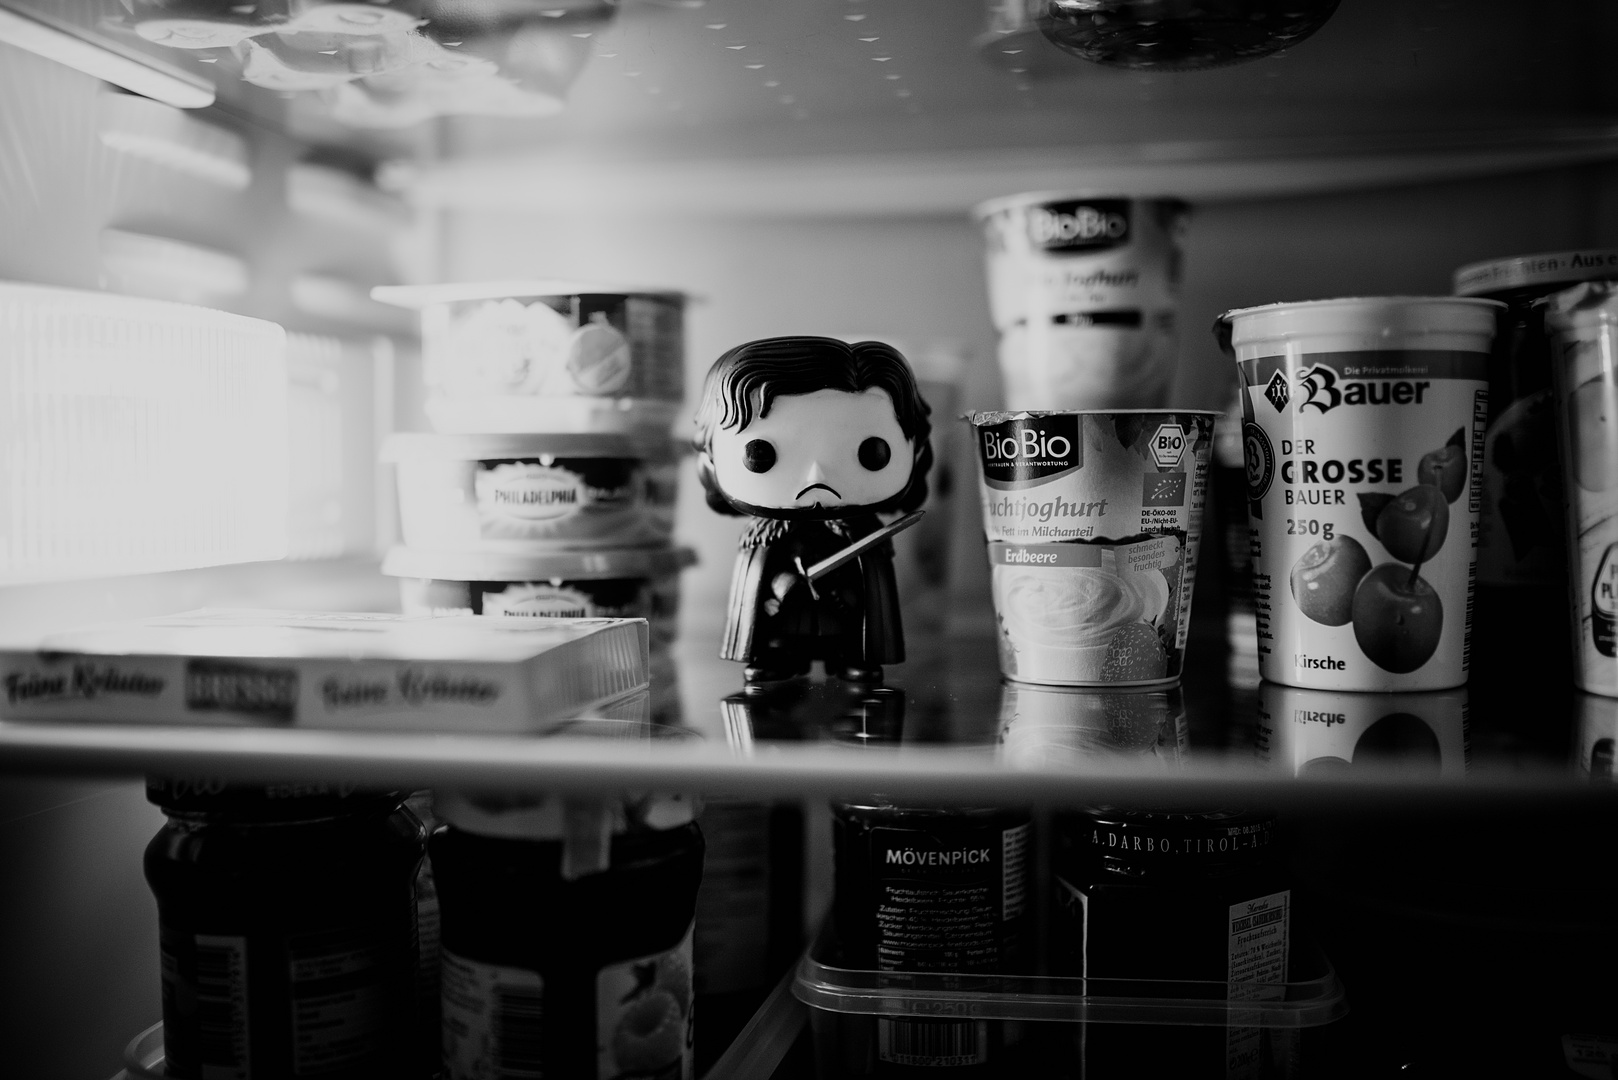 Jon Snow in the fridge